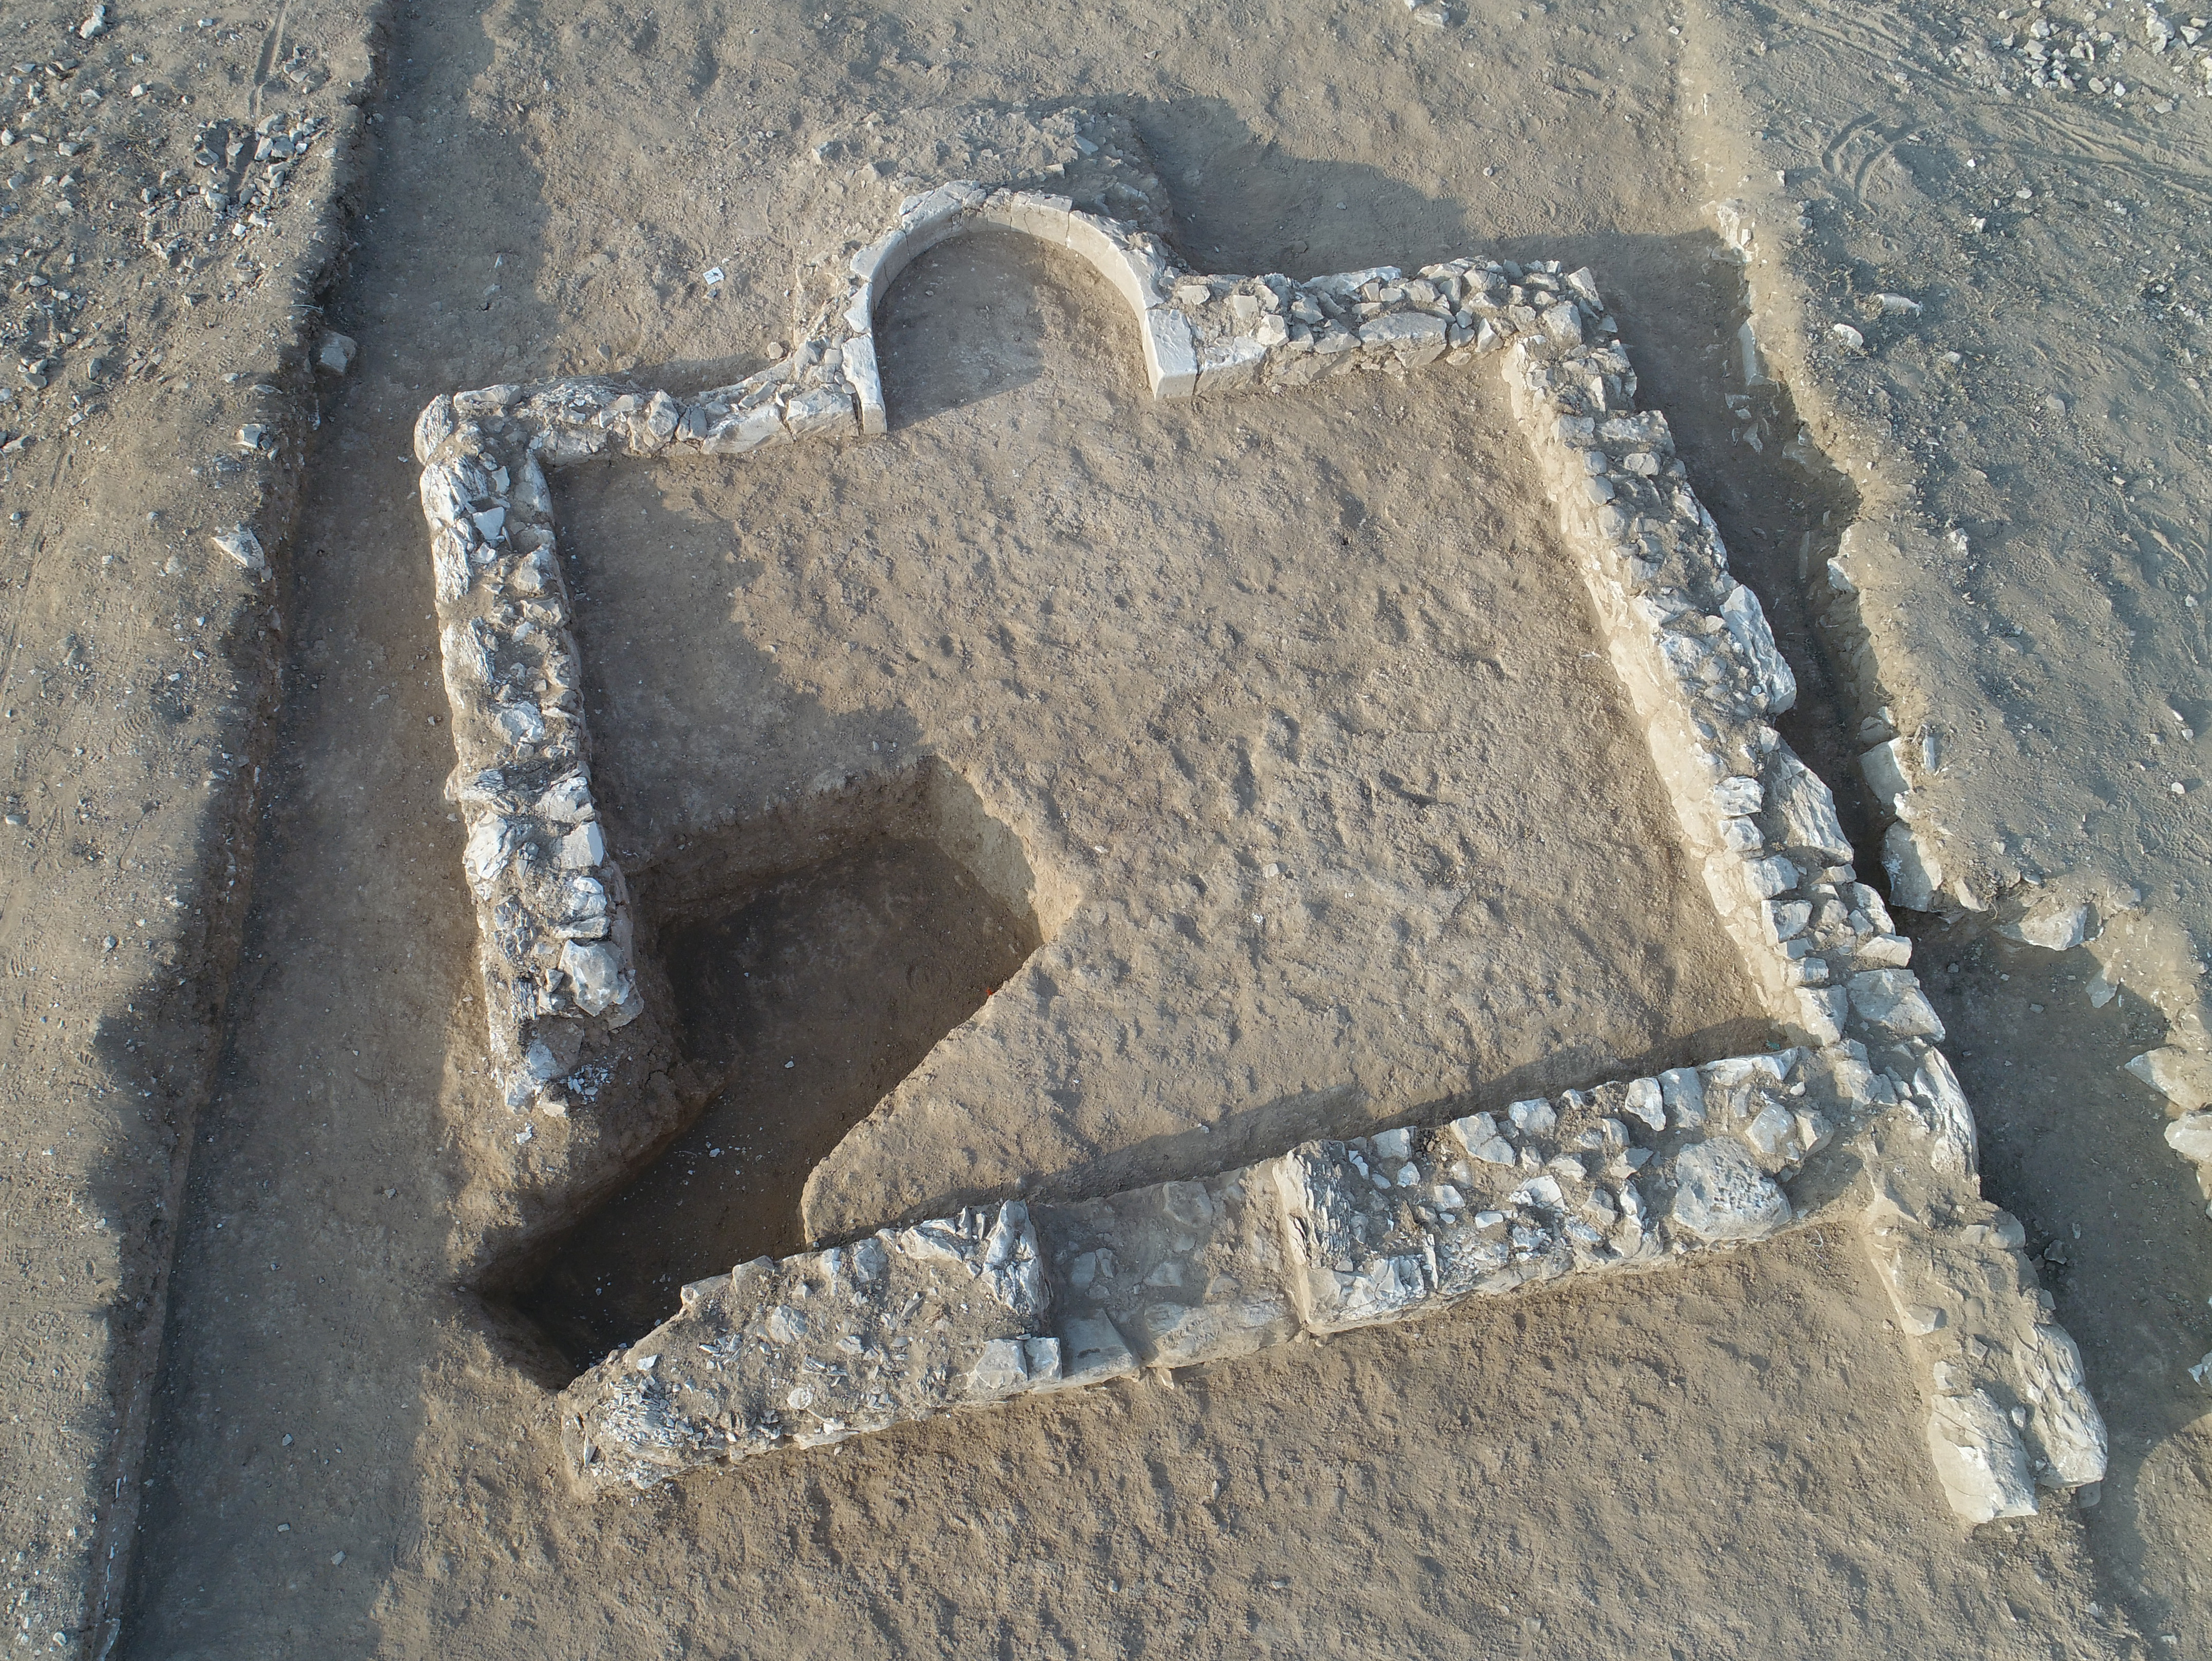 Remains of one the world's oldest known mosques discovered in Israel's Negev desert